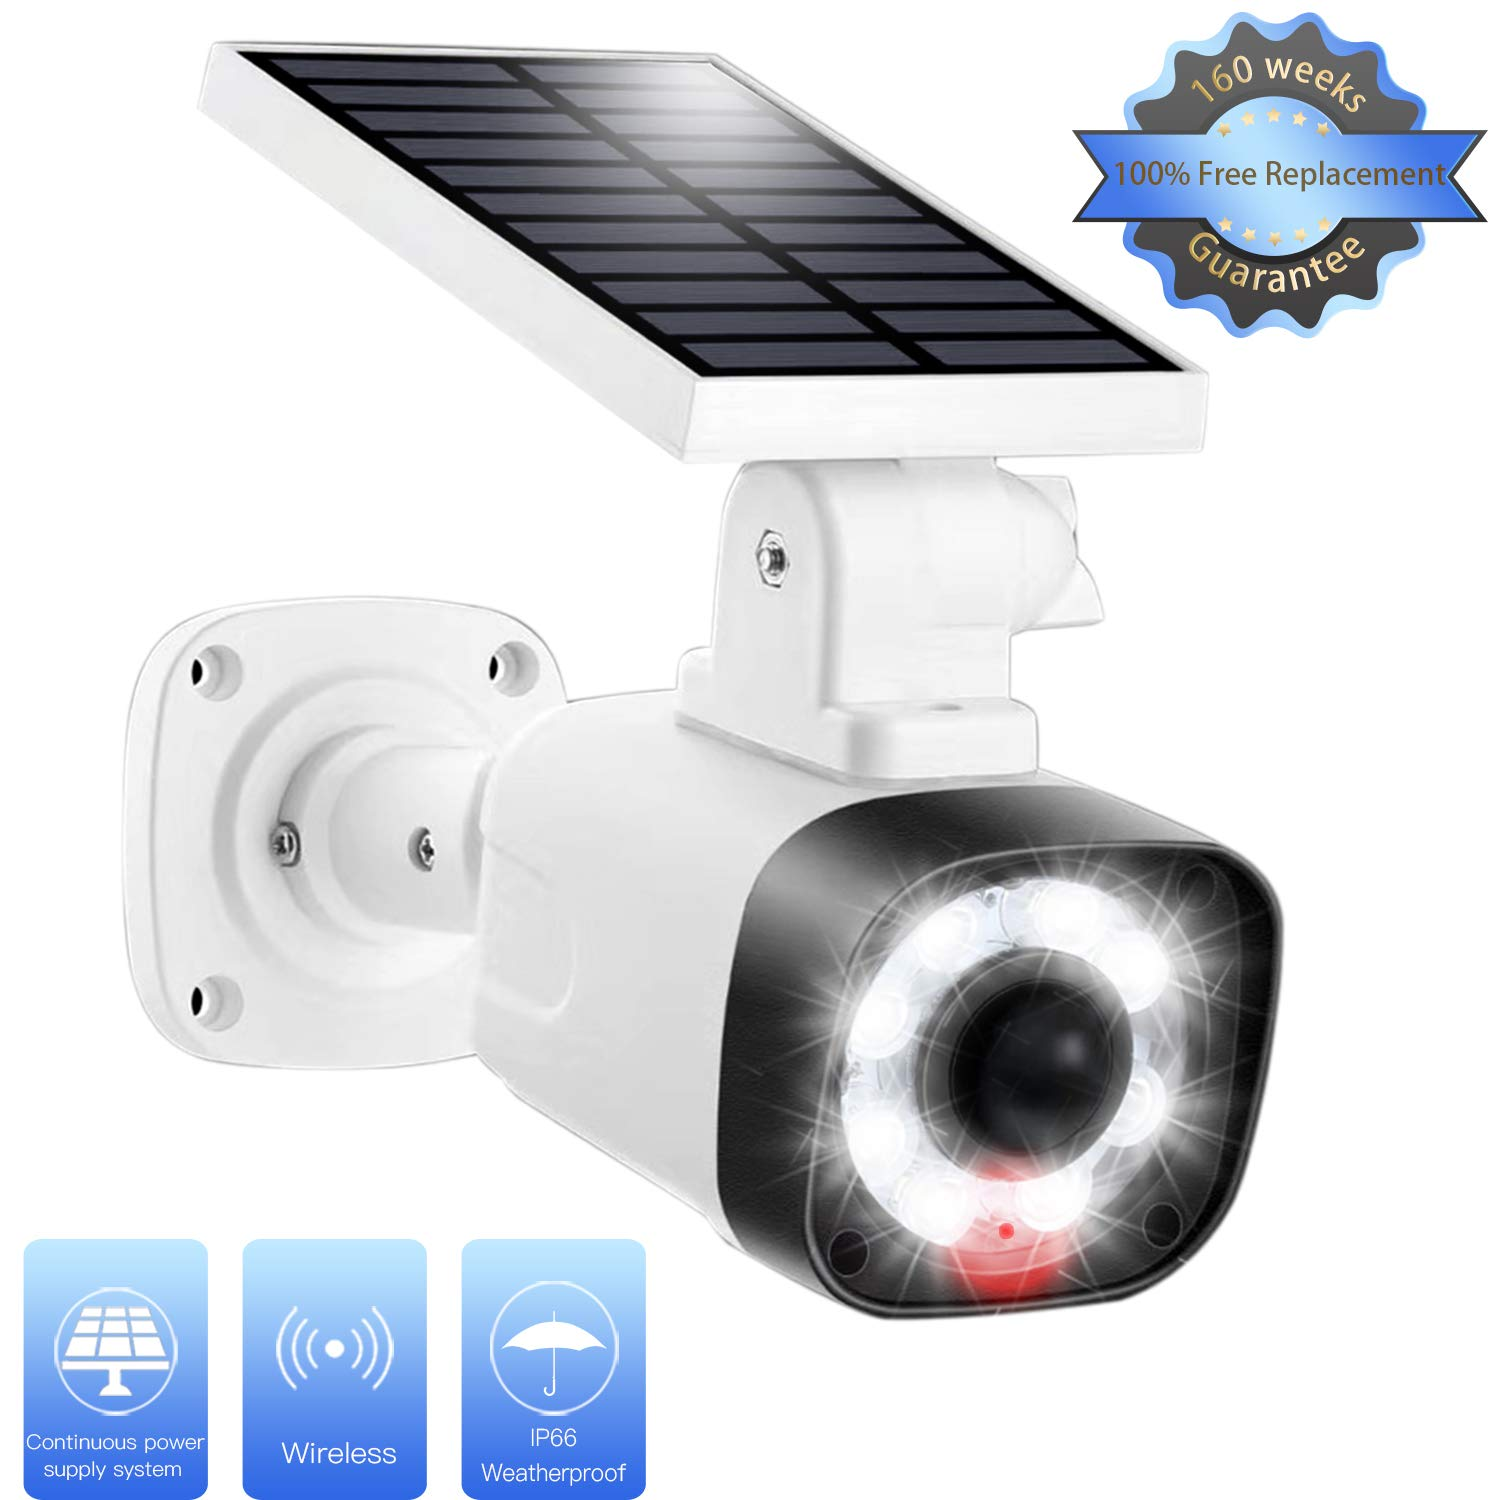 Solar Light Outdoor Motion Sensor – 3 Modes Selection, 20 in Solar Panel IP66 Waterproof, 8 LED Spotlights w 800LM Security Flood Light for Garden Porch Driveway